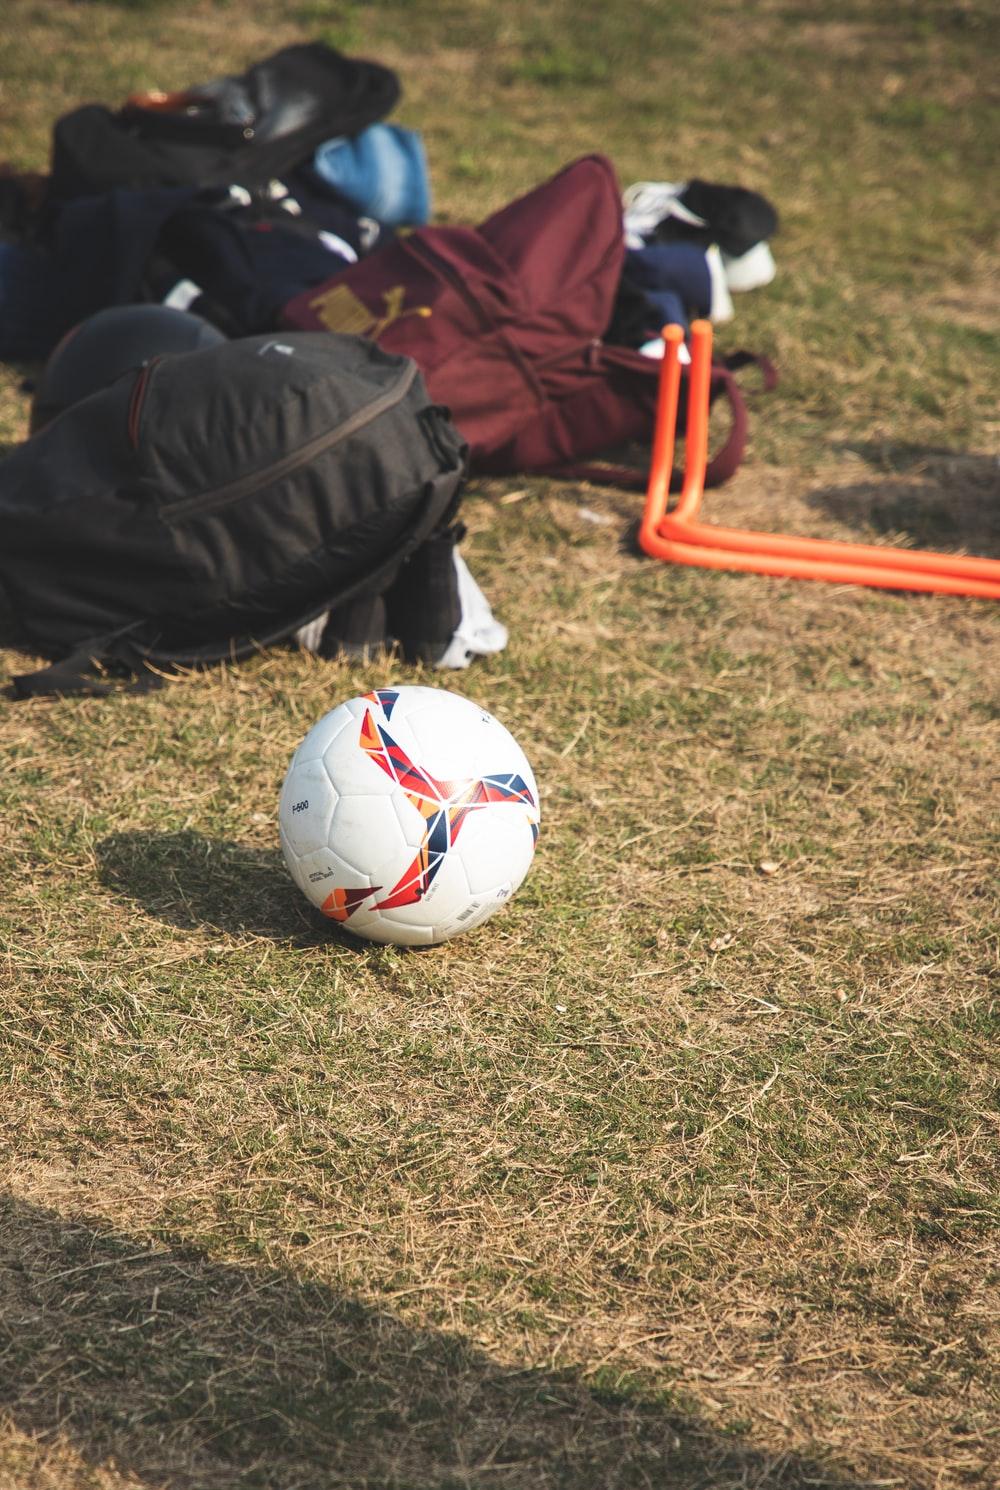 white and red soccer ball on green grass field